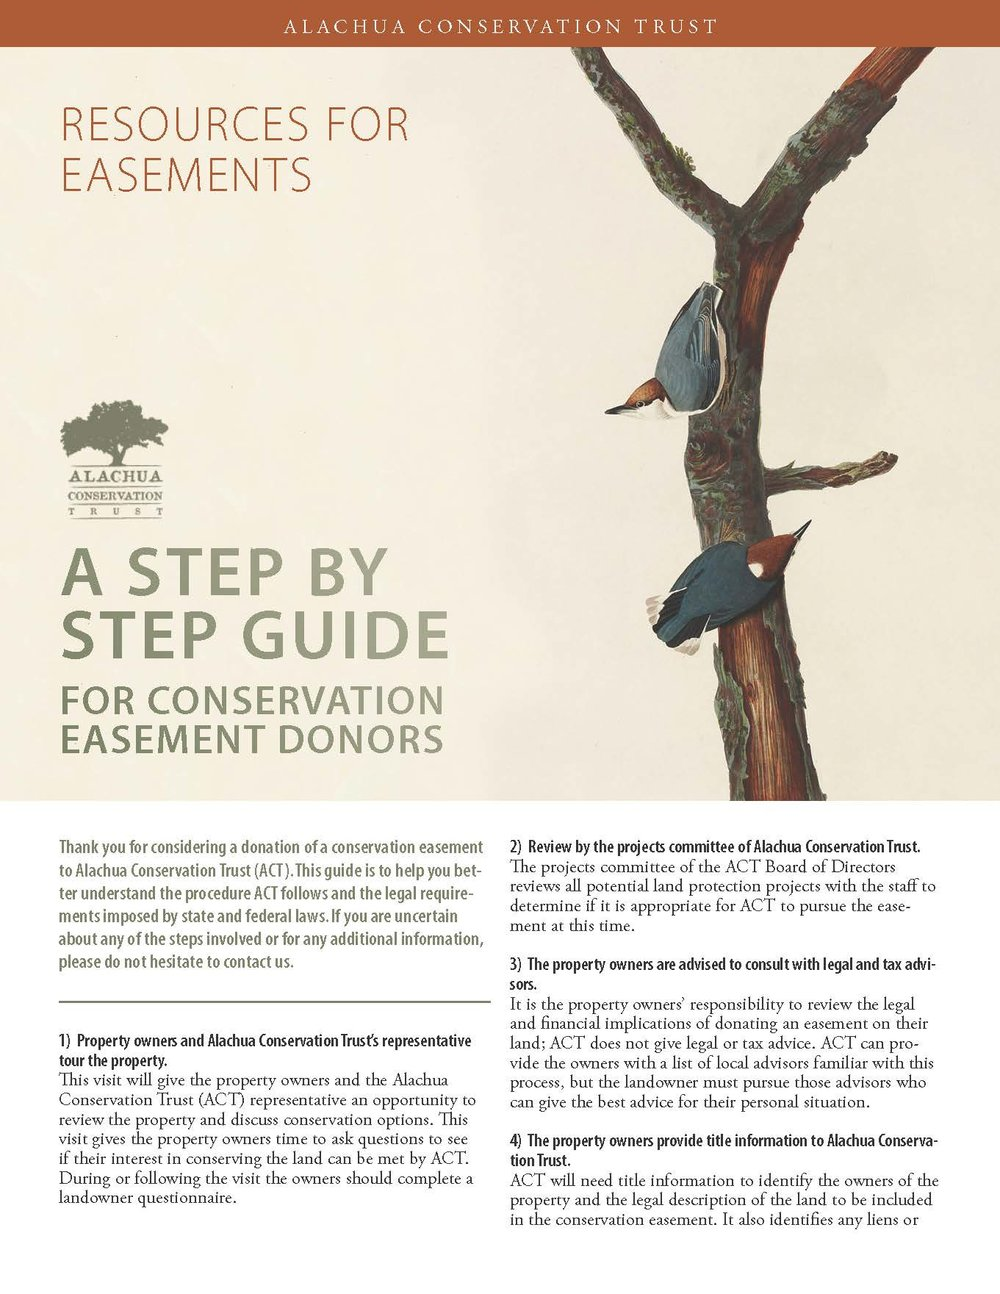 Step by Step Guide for Conservation Easement Donors